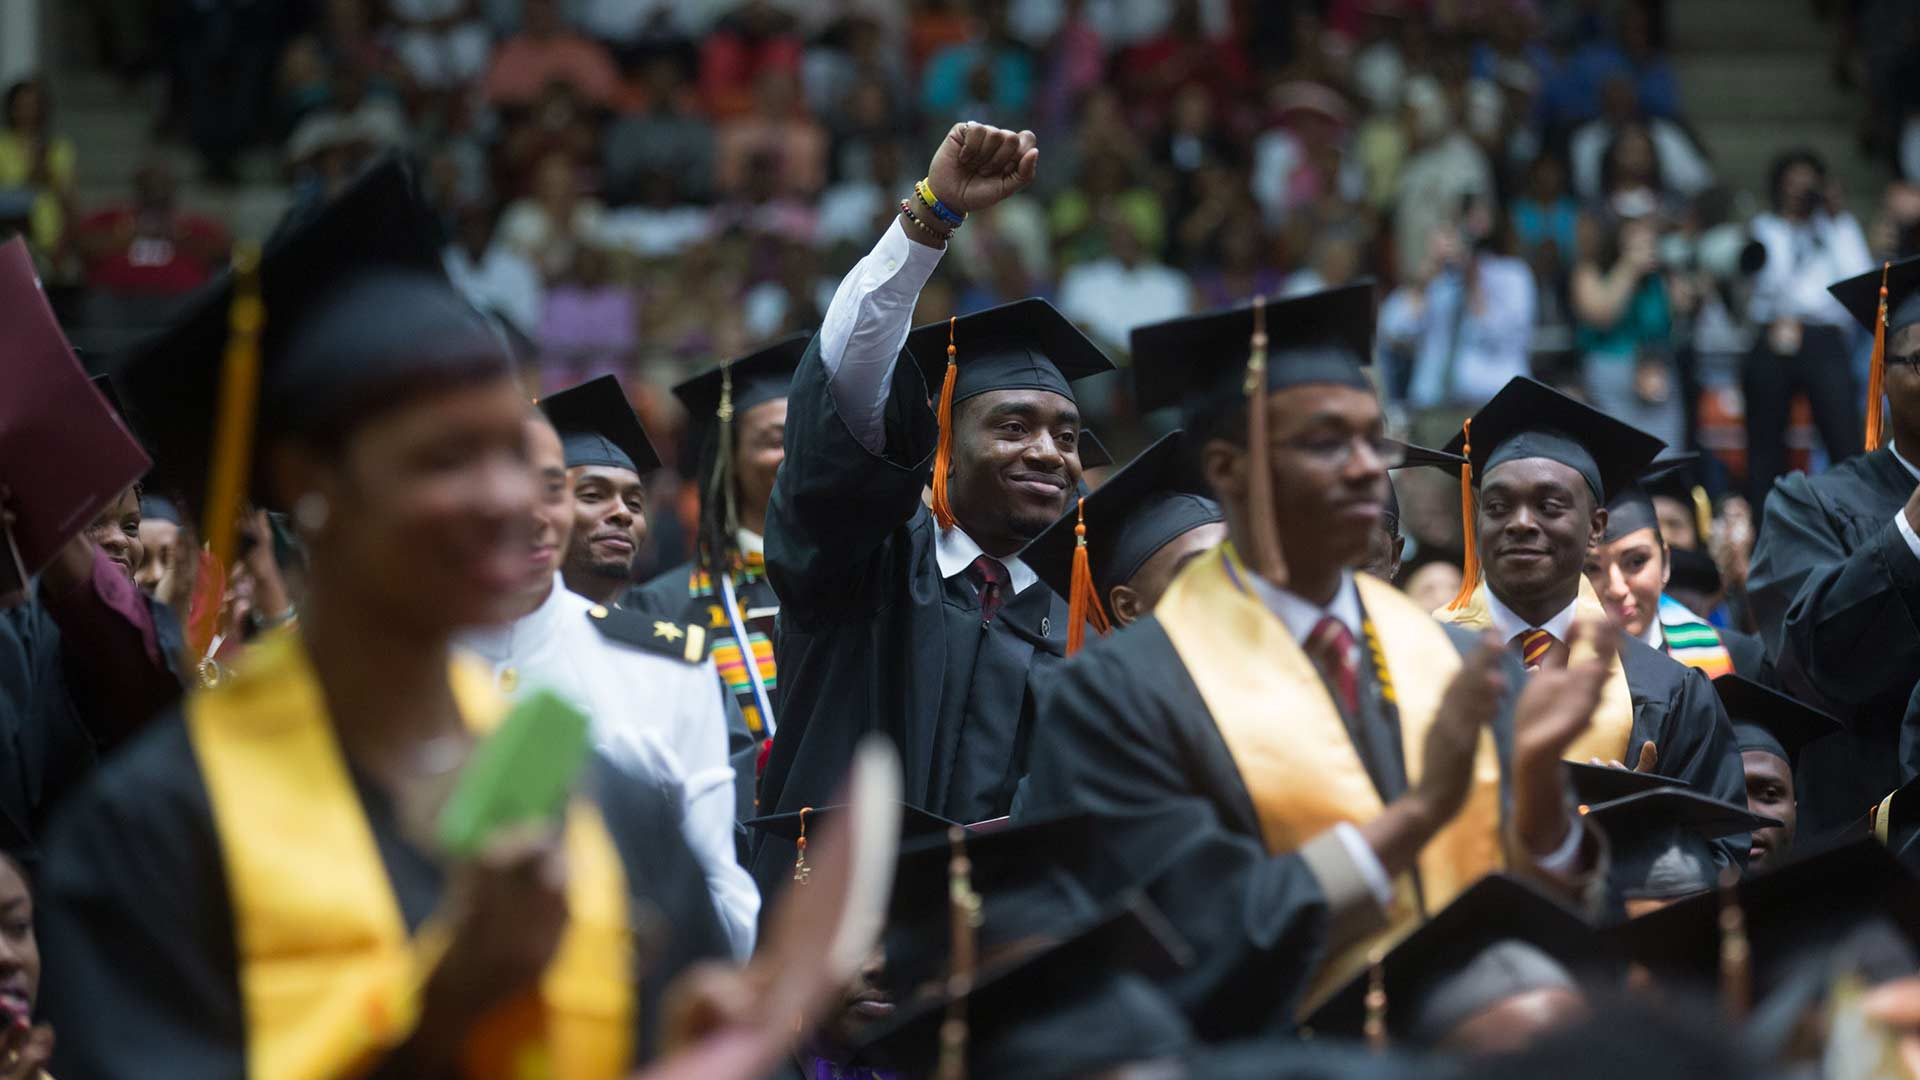 Students listen to then-First Lady Michelle Obama's remarks for the Tuskegee University commencement ceremony in Tuskegee, Alabama, May 9, 2015.